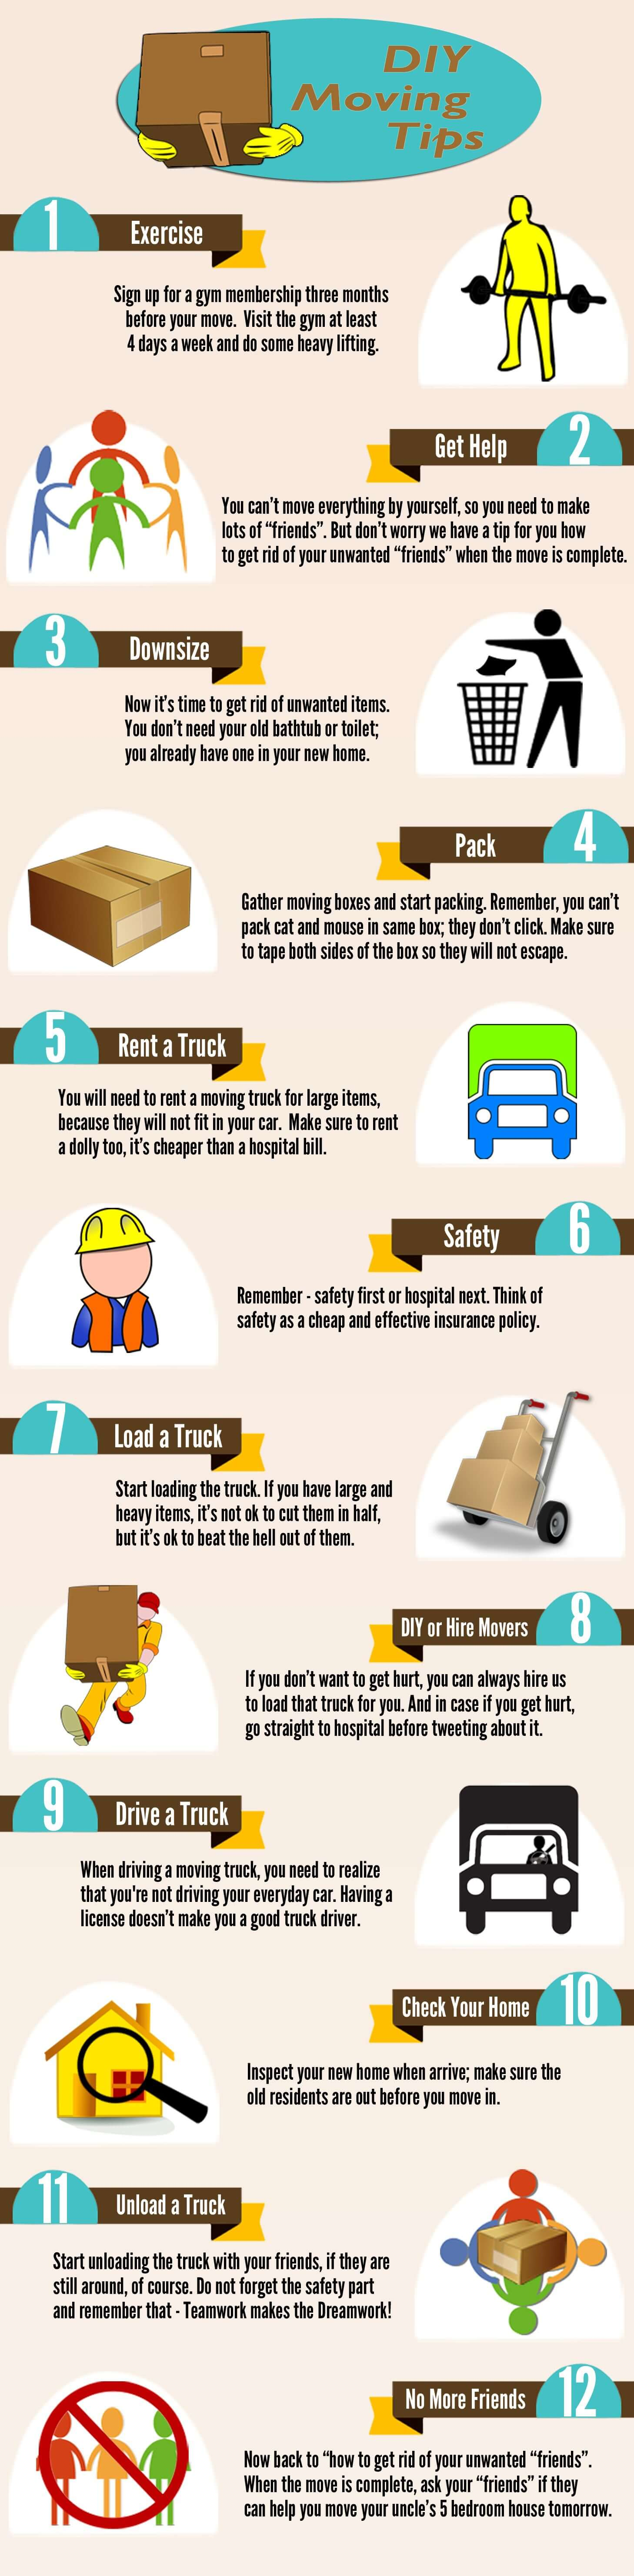 Funny DIY Moving Tips